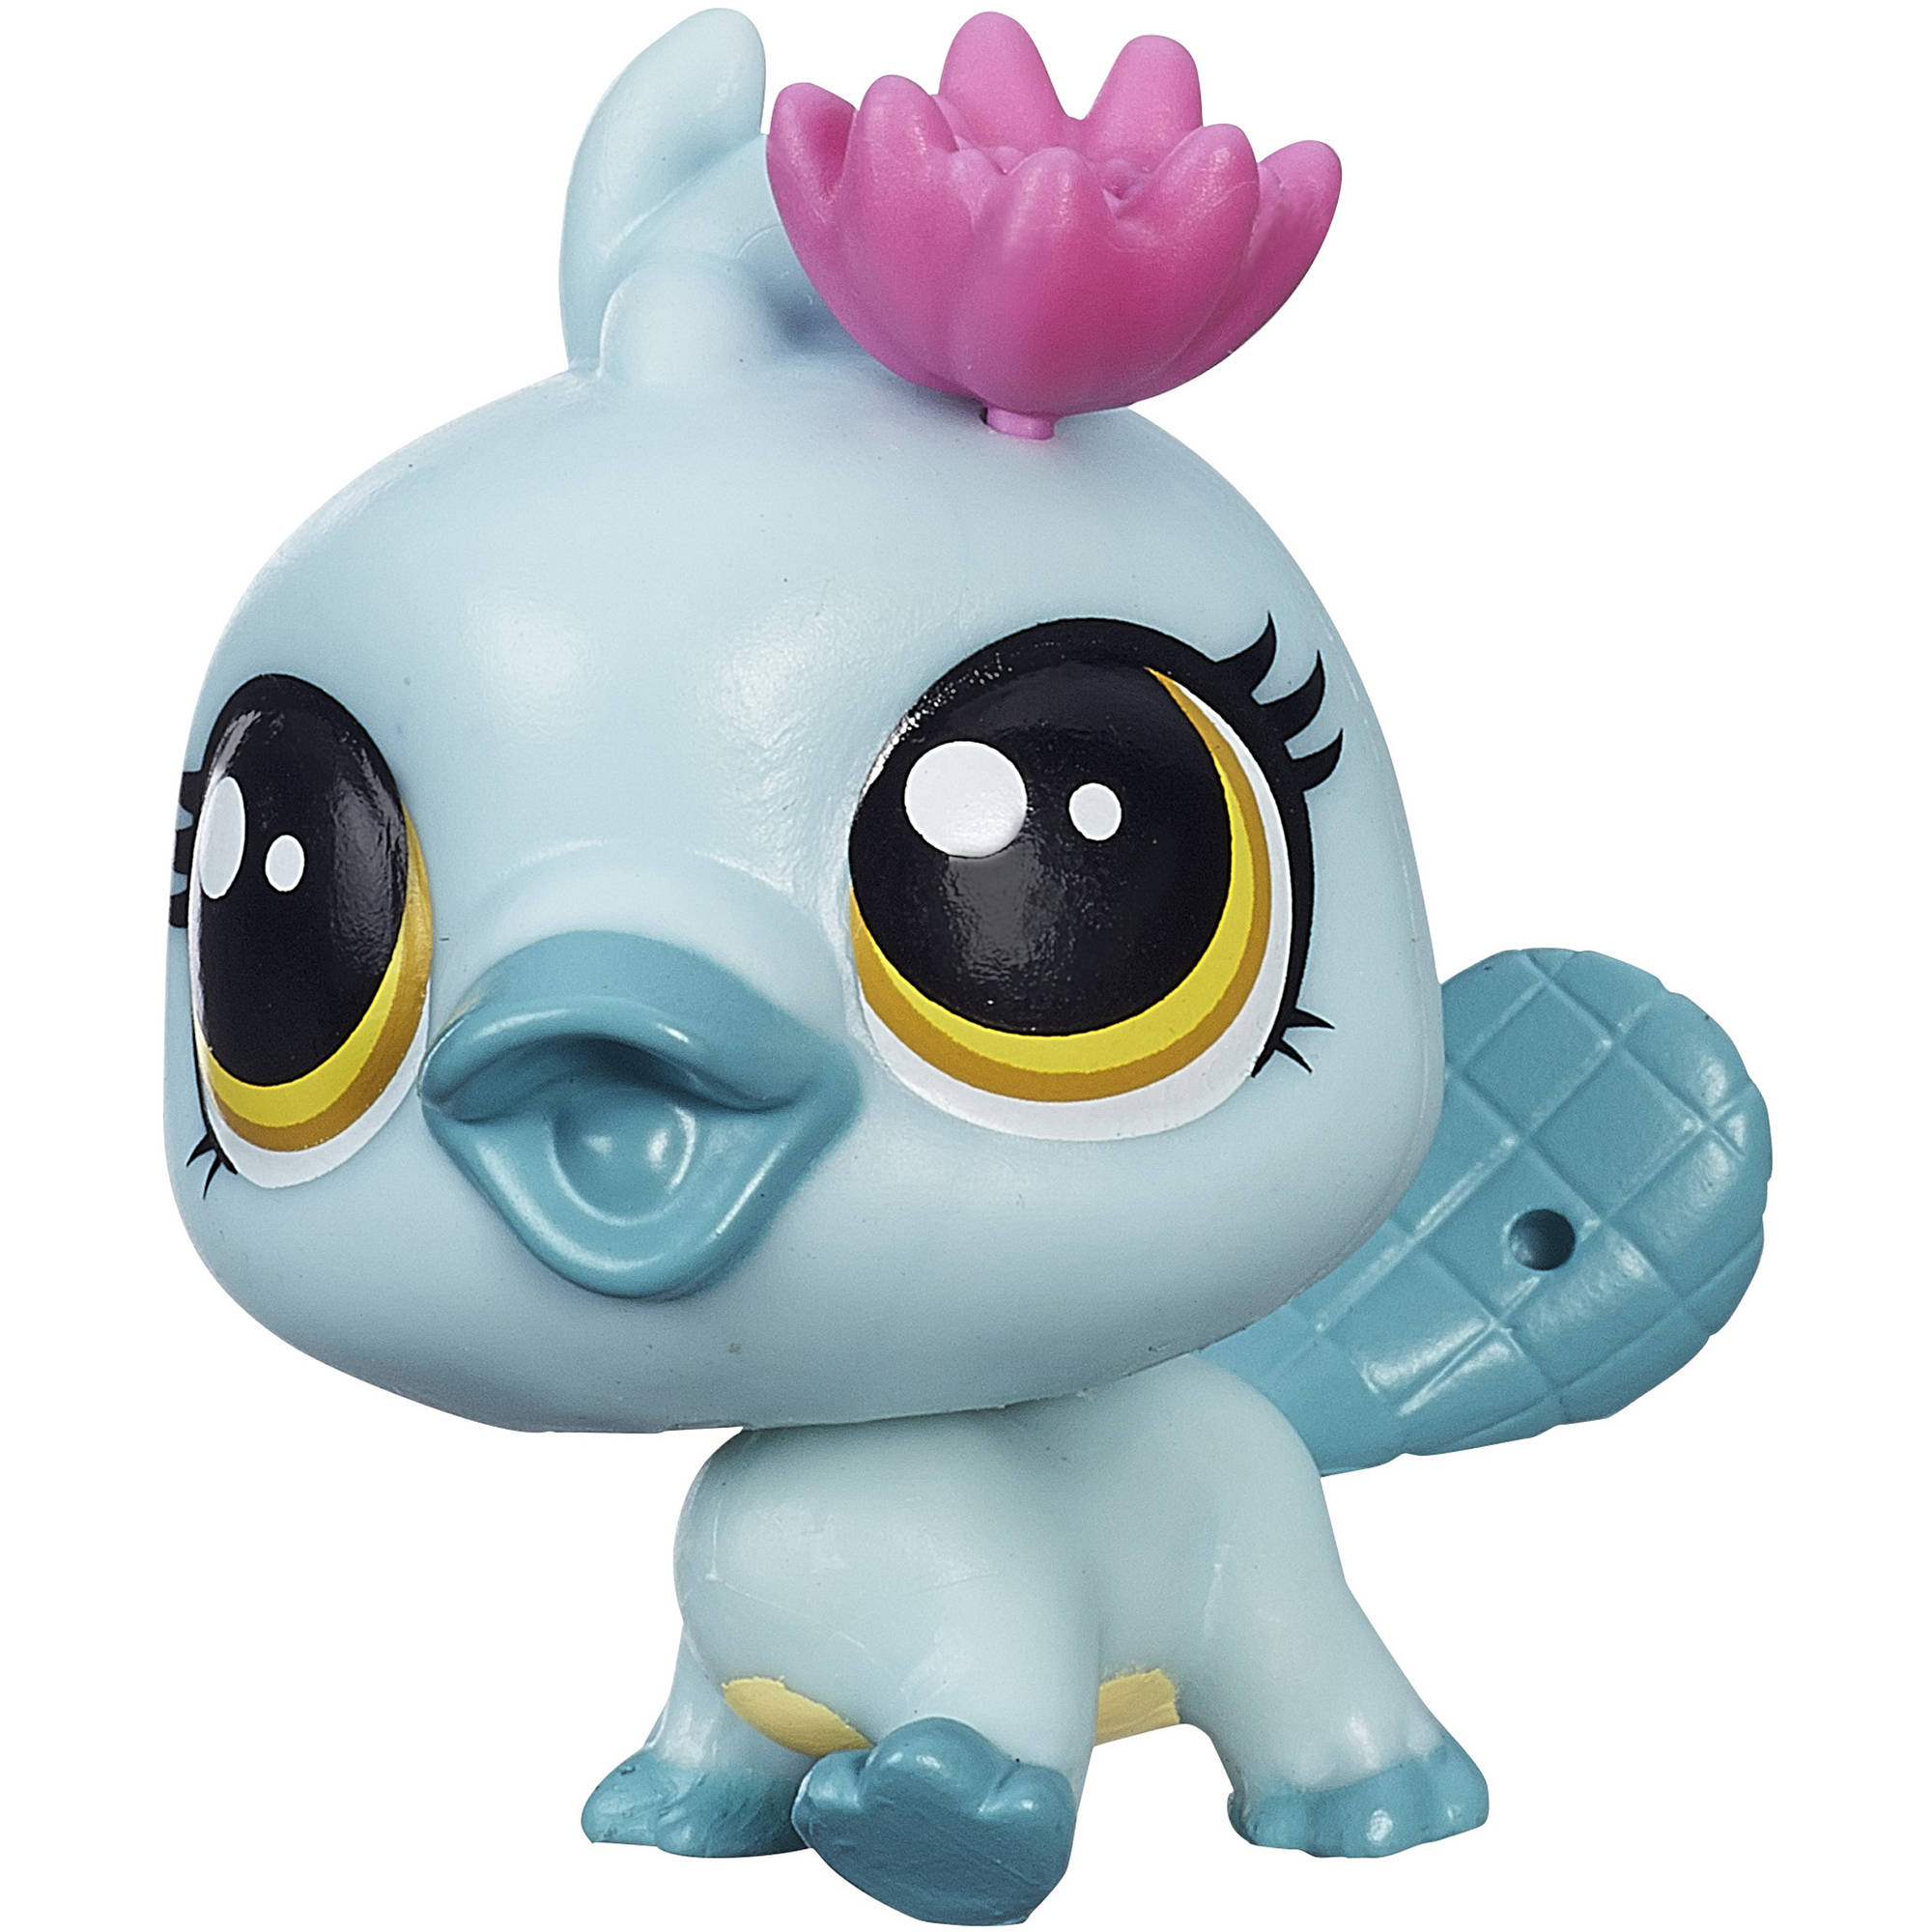 Littlest Pet Shop Get the Pets Single Pack, Orna Curley